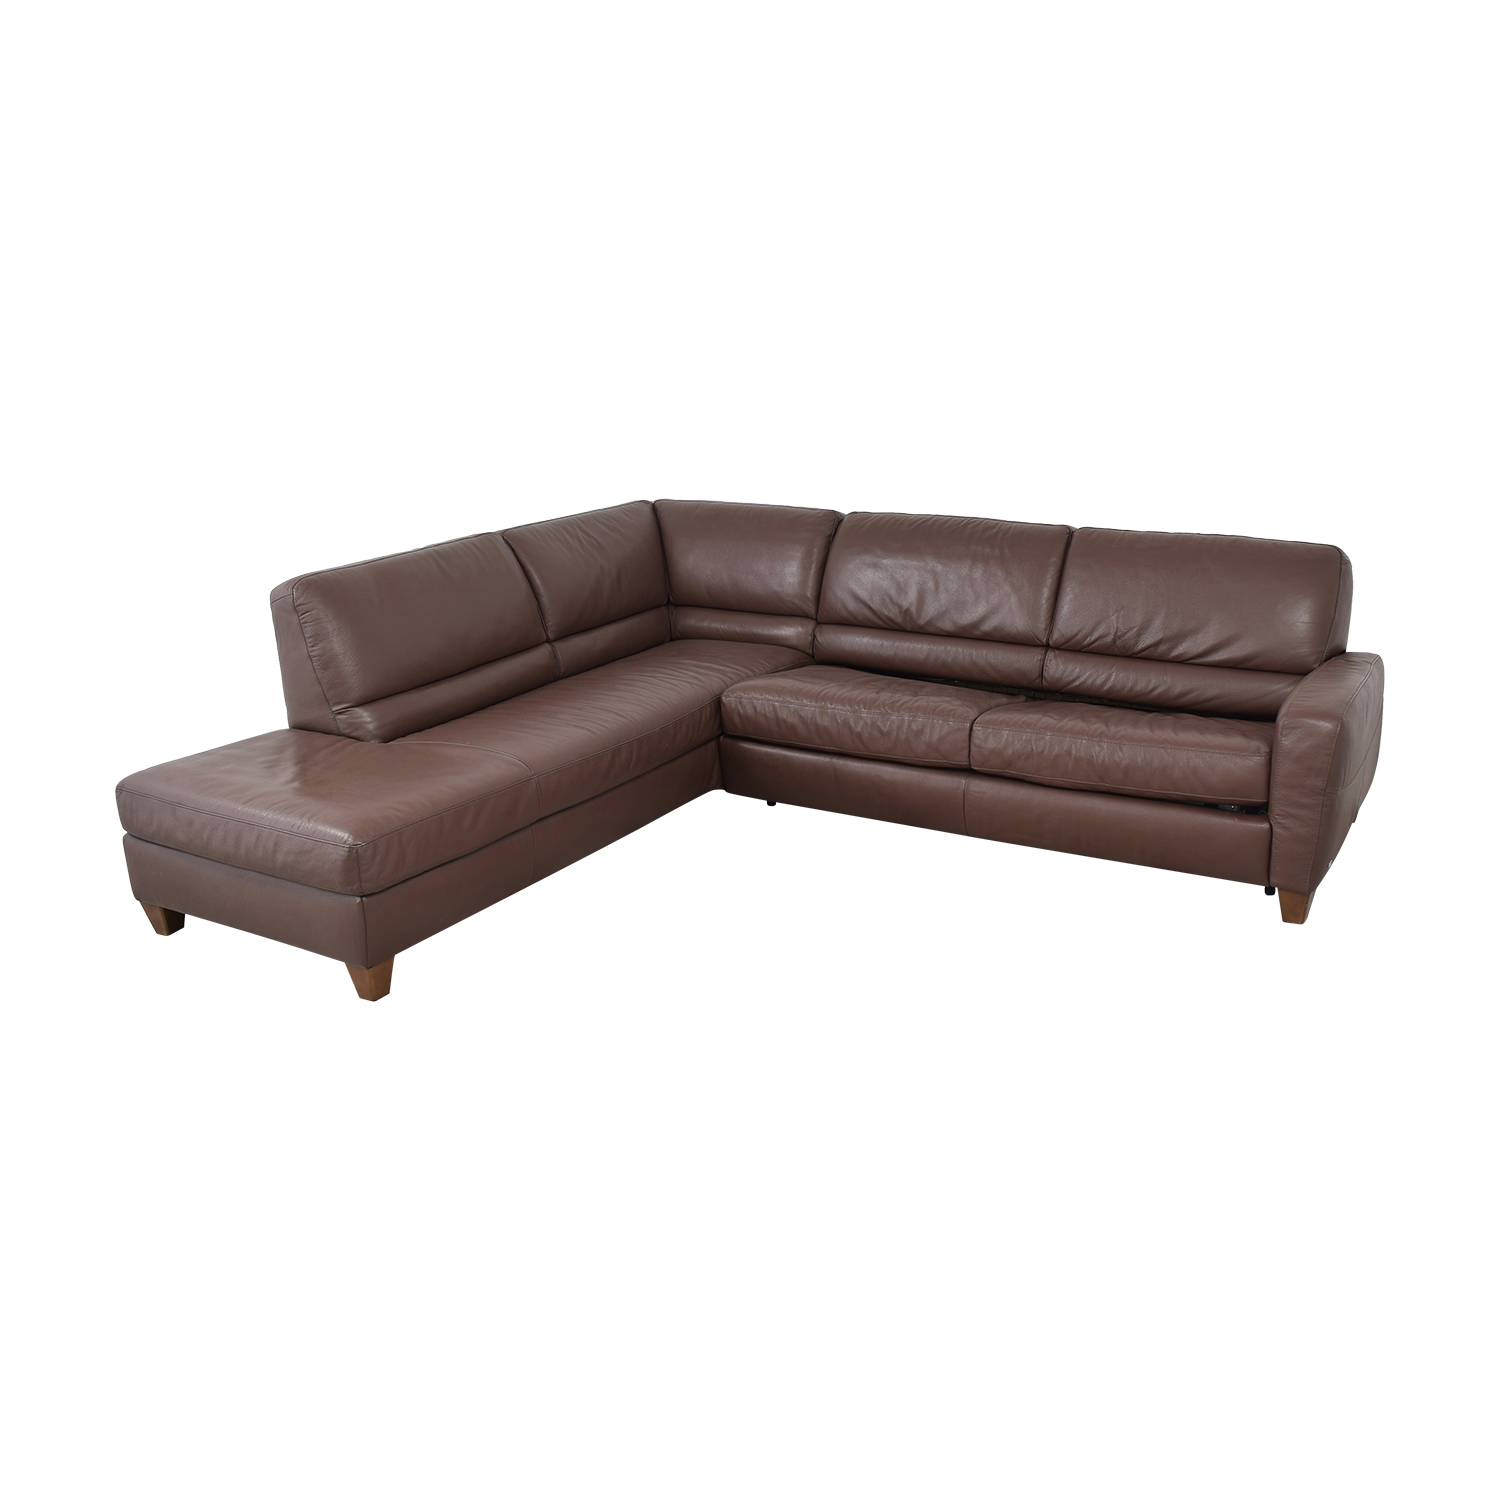 68% OFF - Italsofa Italsofa Sectional Sleeper Sofa with Chaise / Sofas